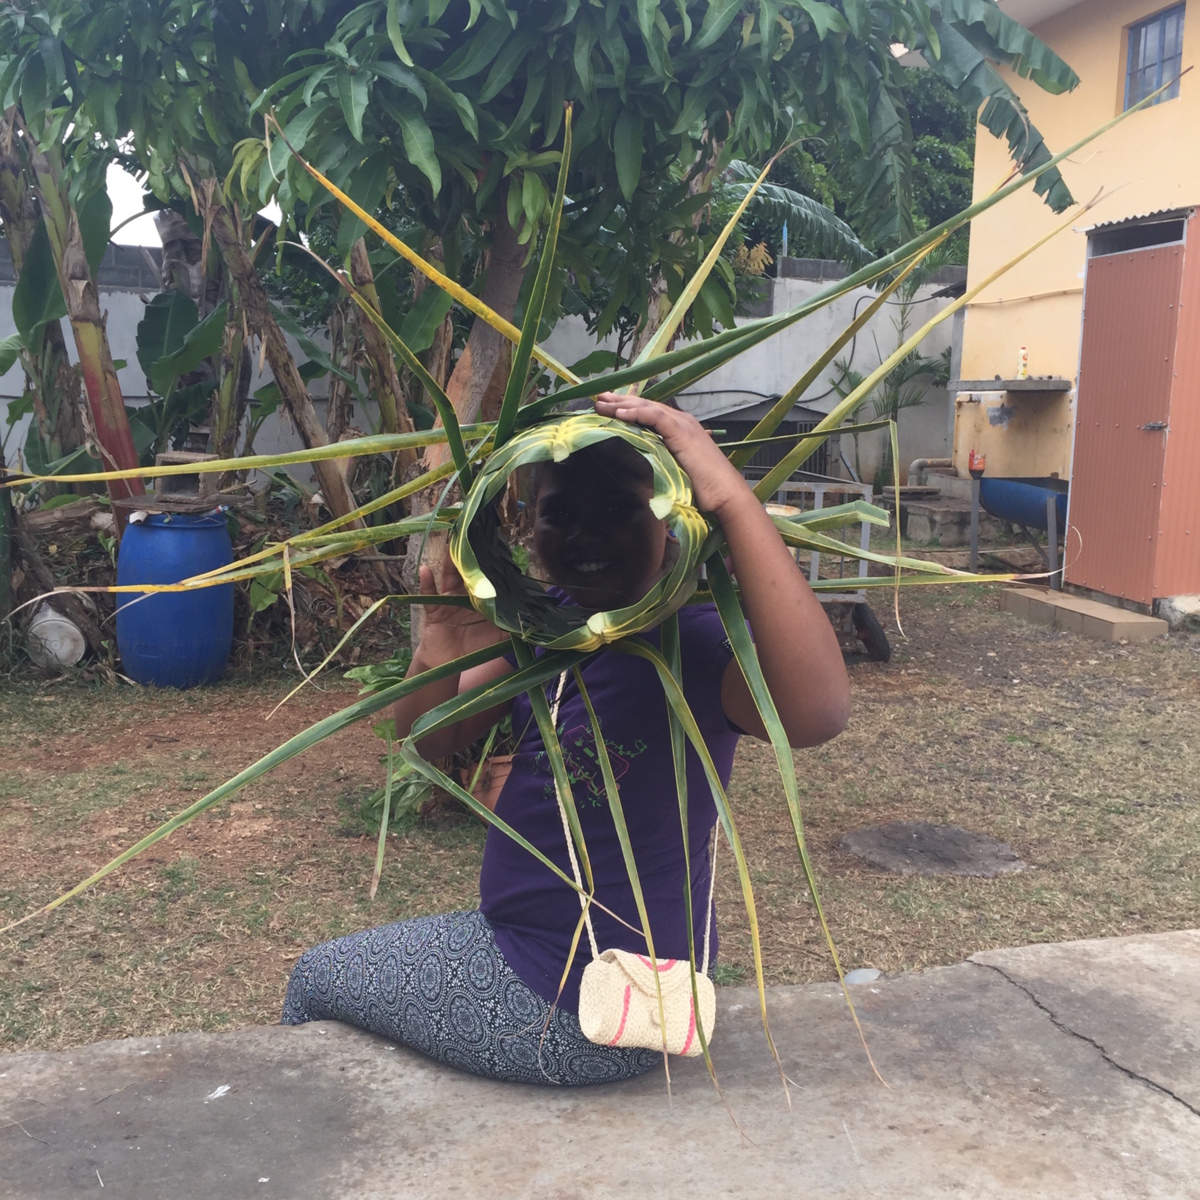 Basket weaving with coconut frond